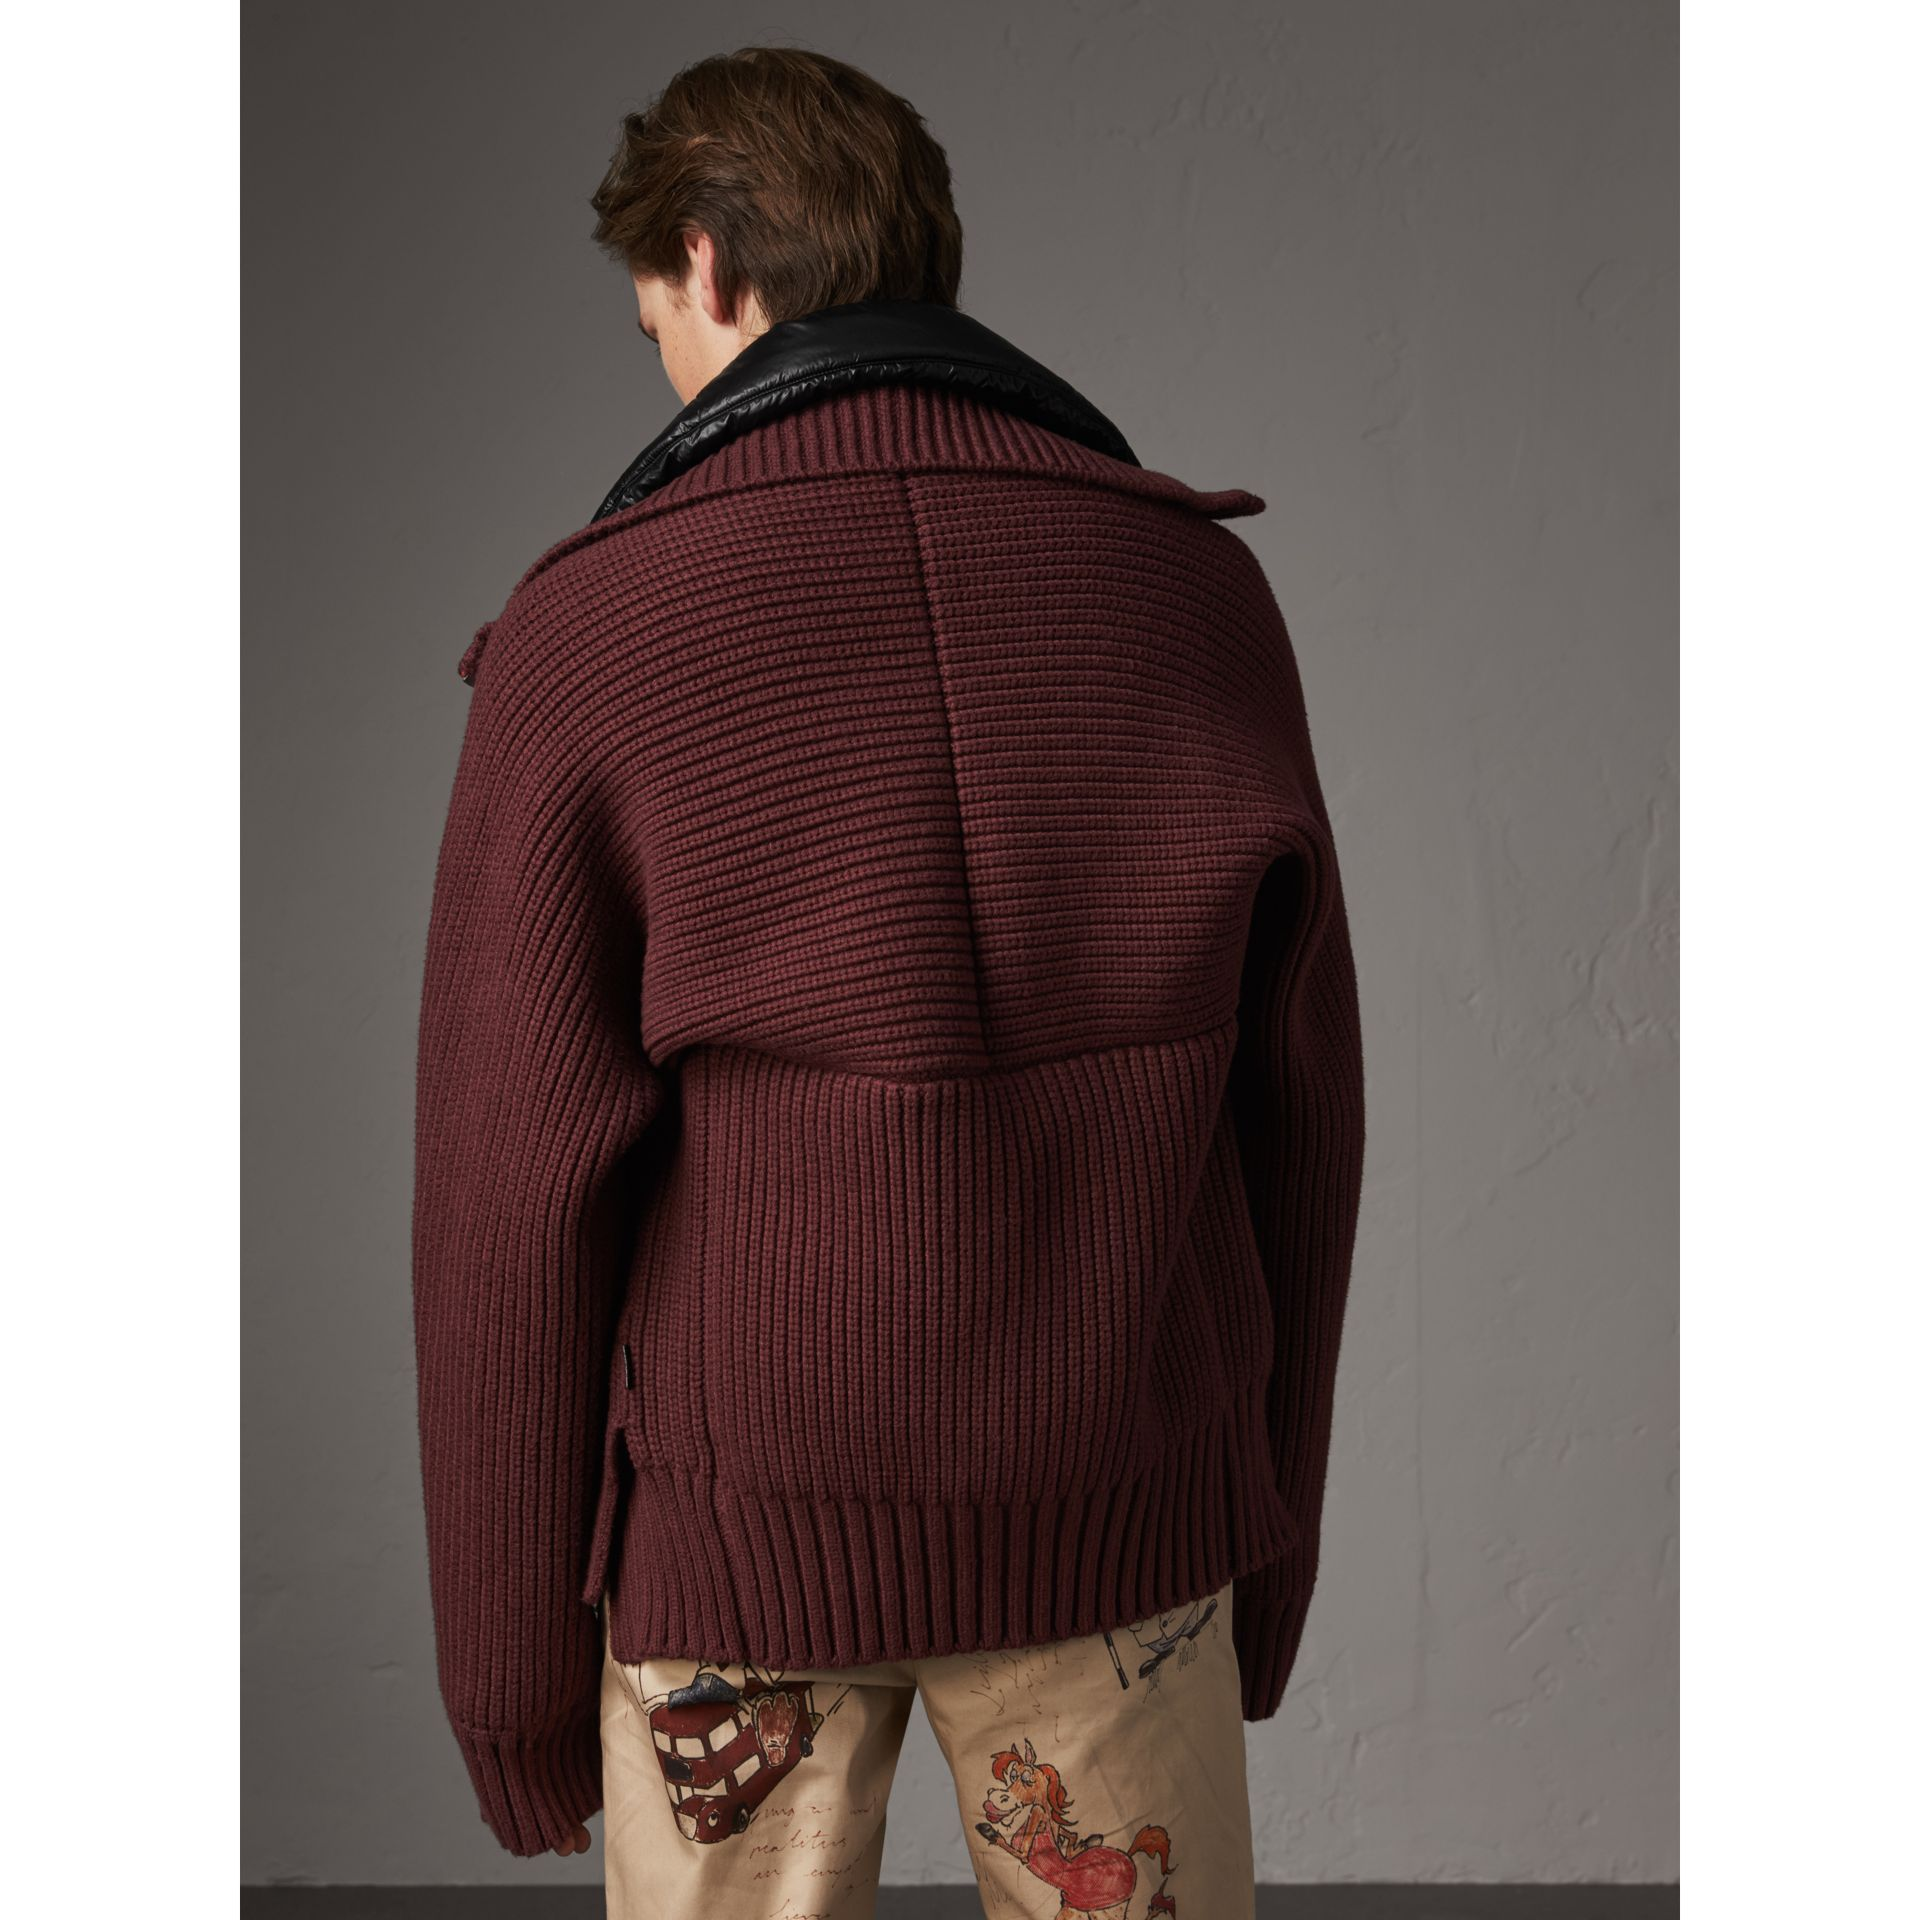 Rib Knit Cotton Blend Jacket with Down-filled Gilet in Mahogany Red - Men | Burberry - gallery image 3